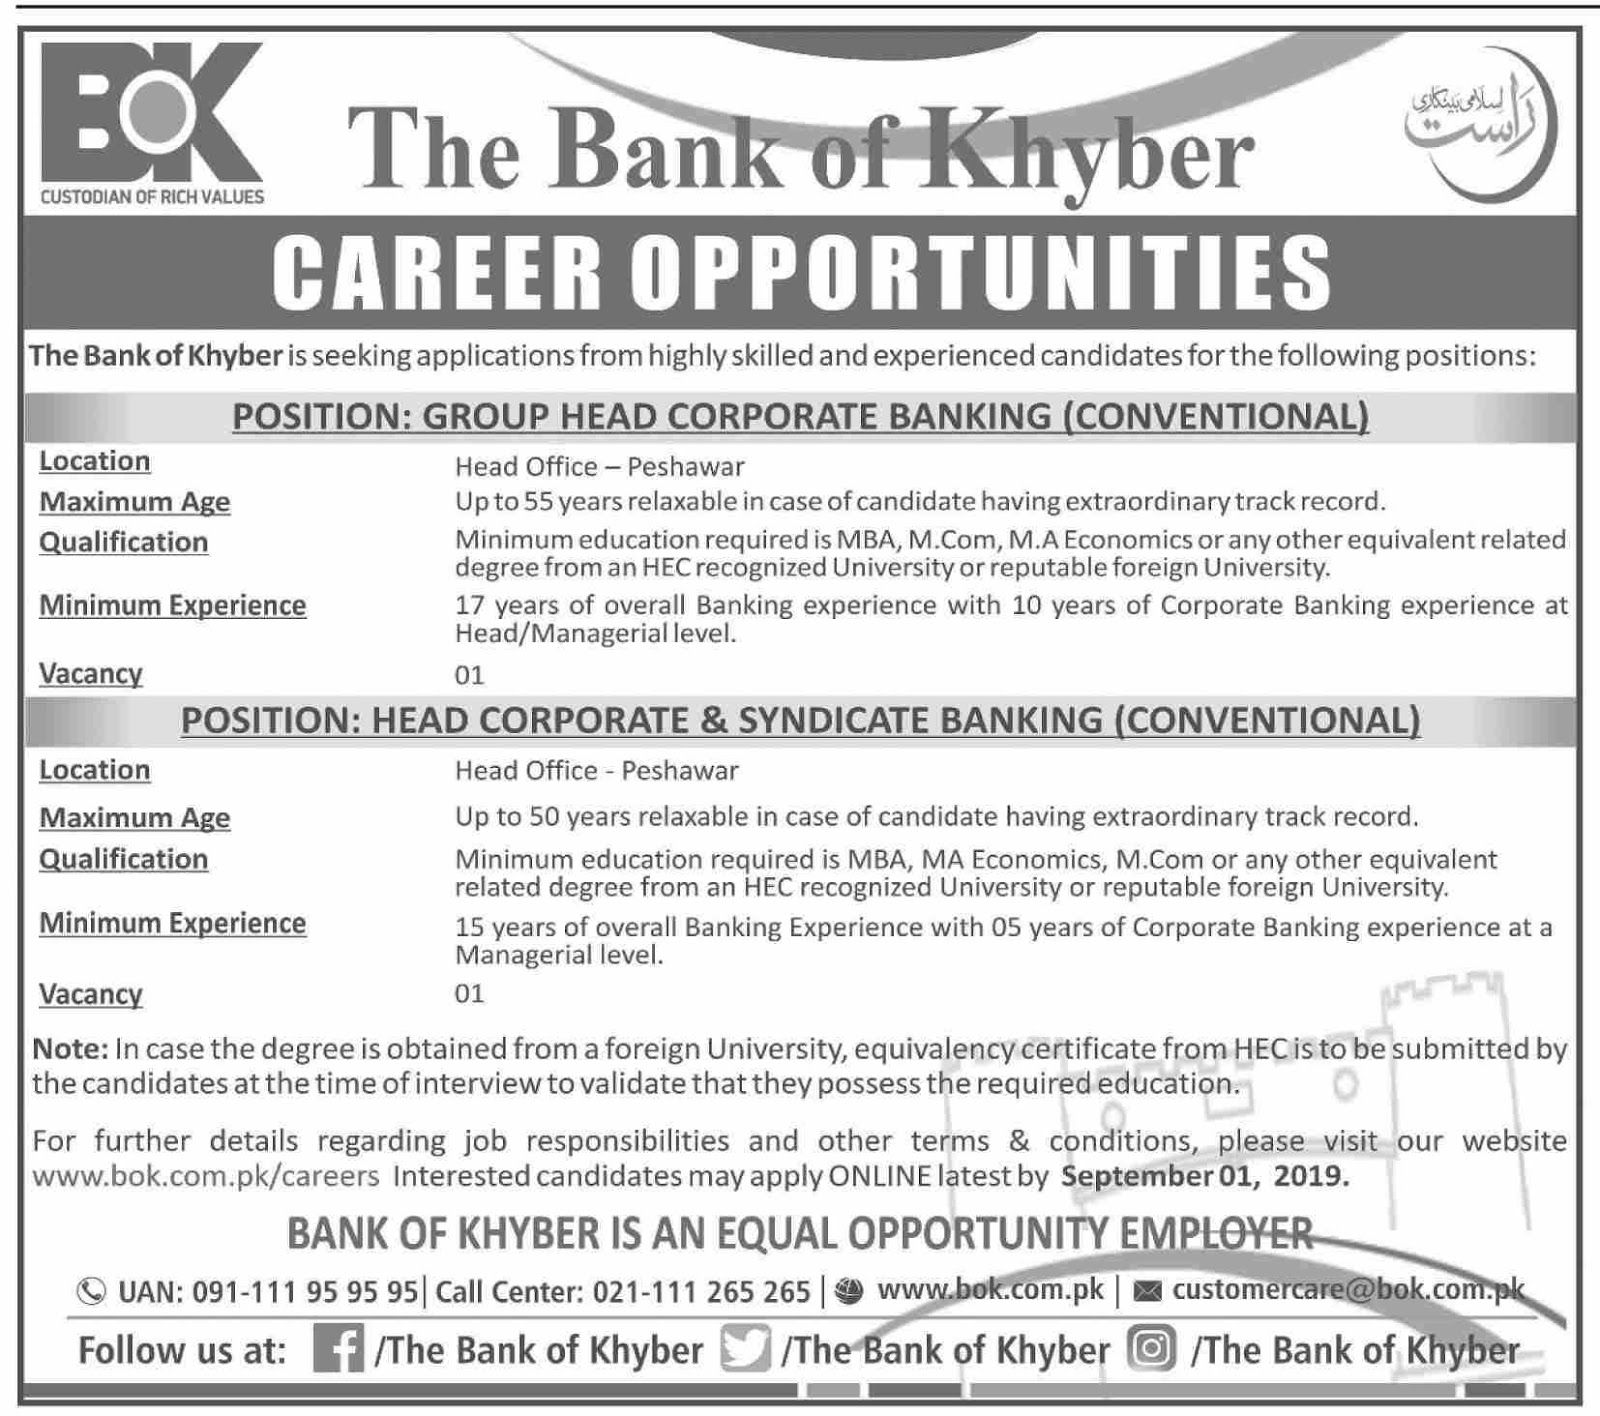 The Bank of Khyber BOK is hiring Staff